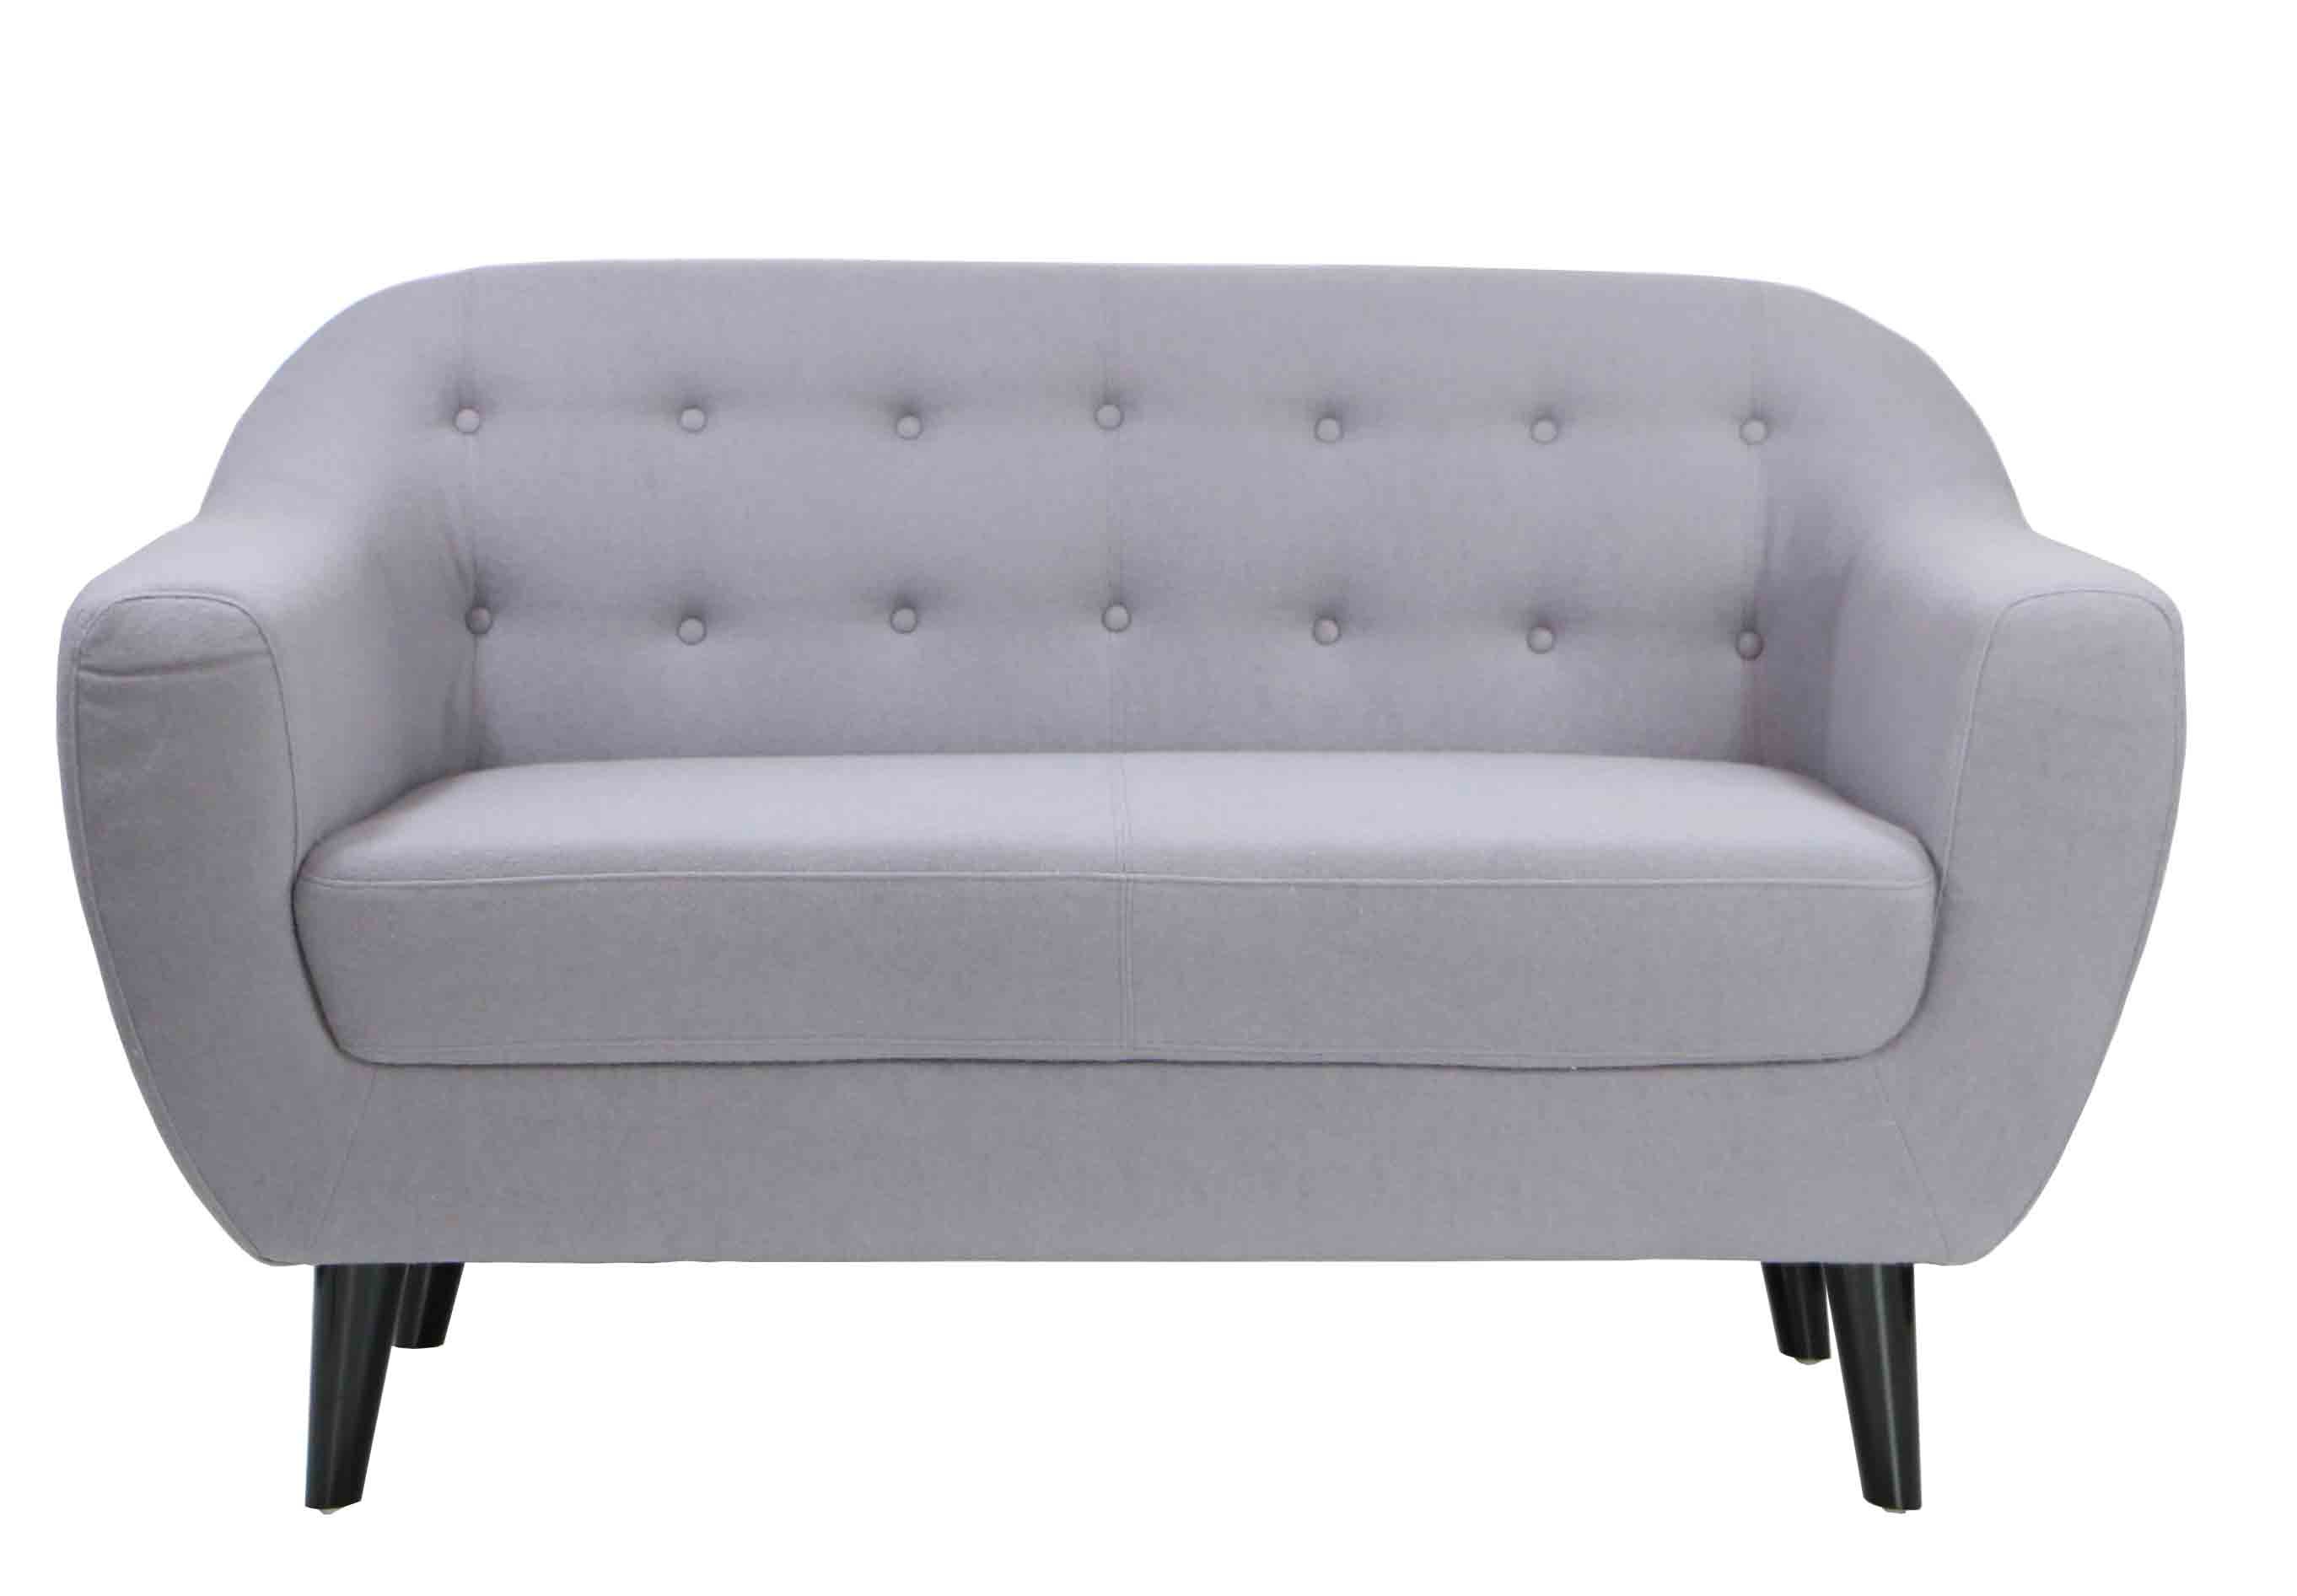 Replica kraesten designer sofa in light grey for Design sofa replica